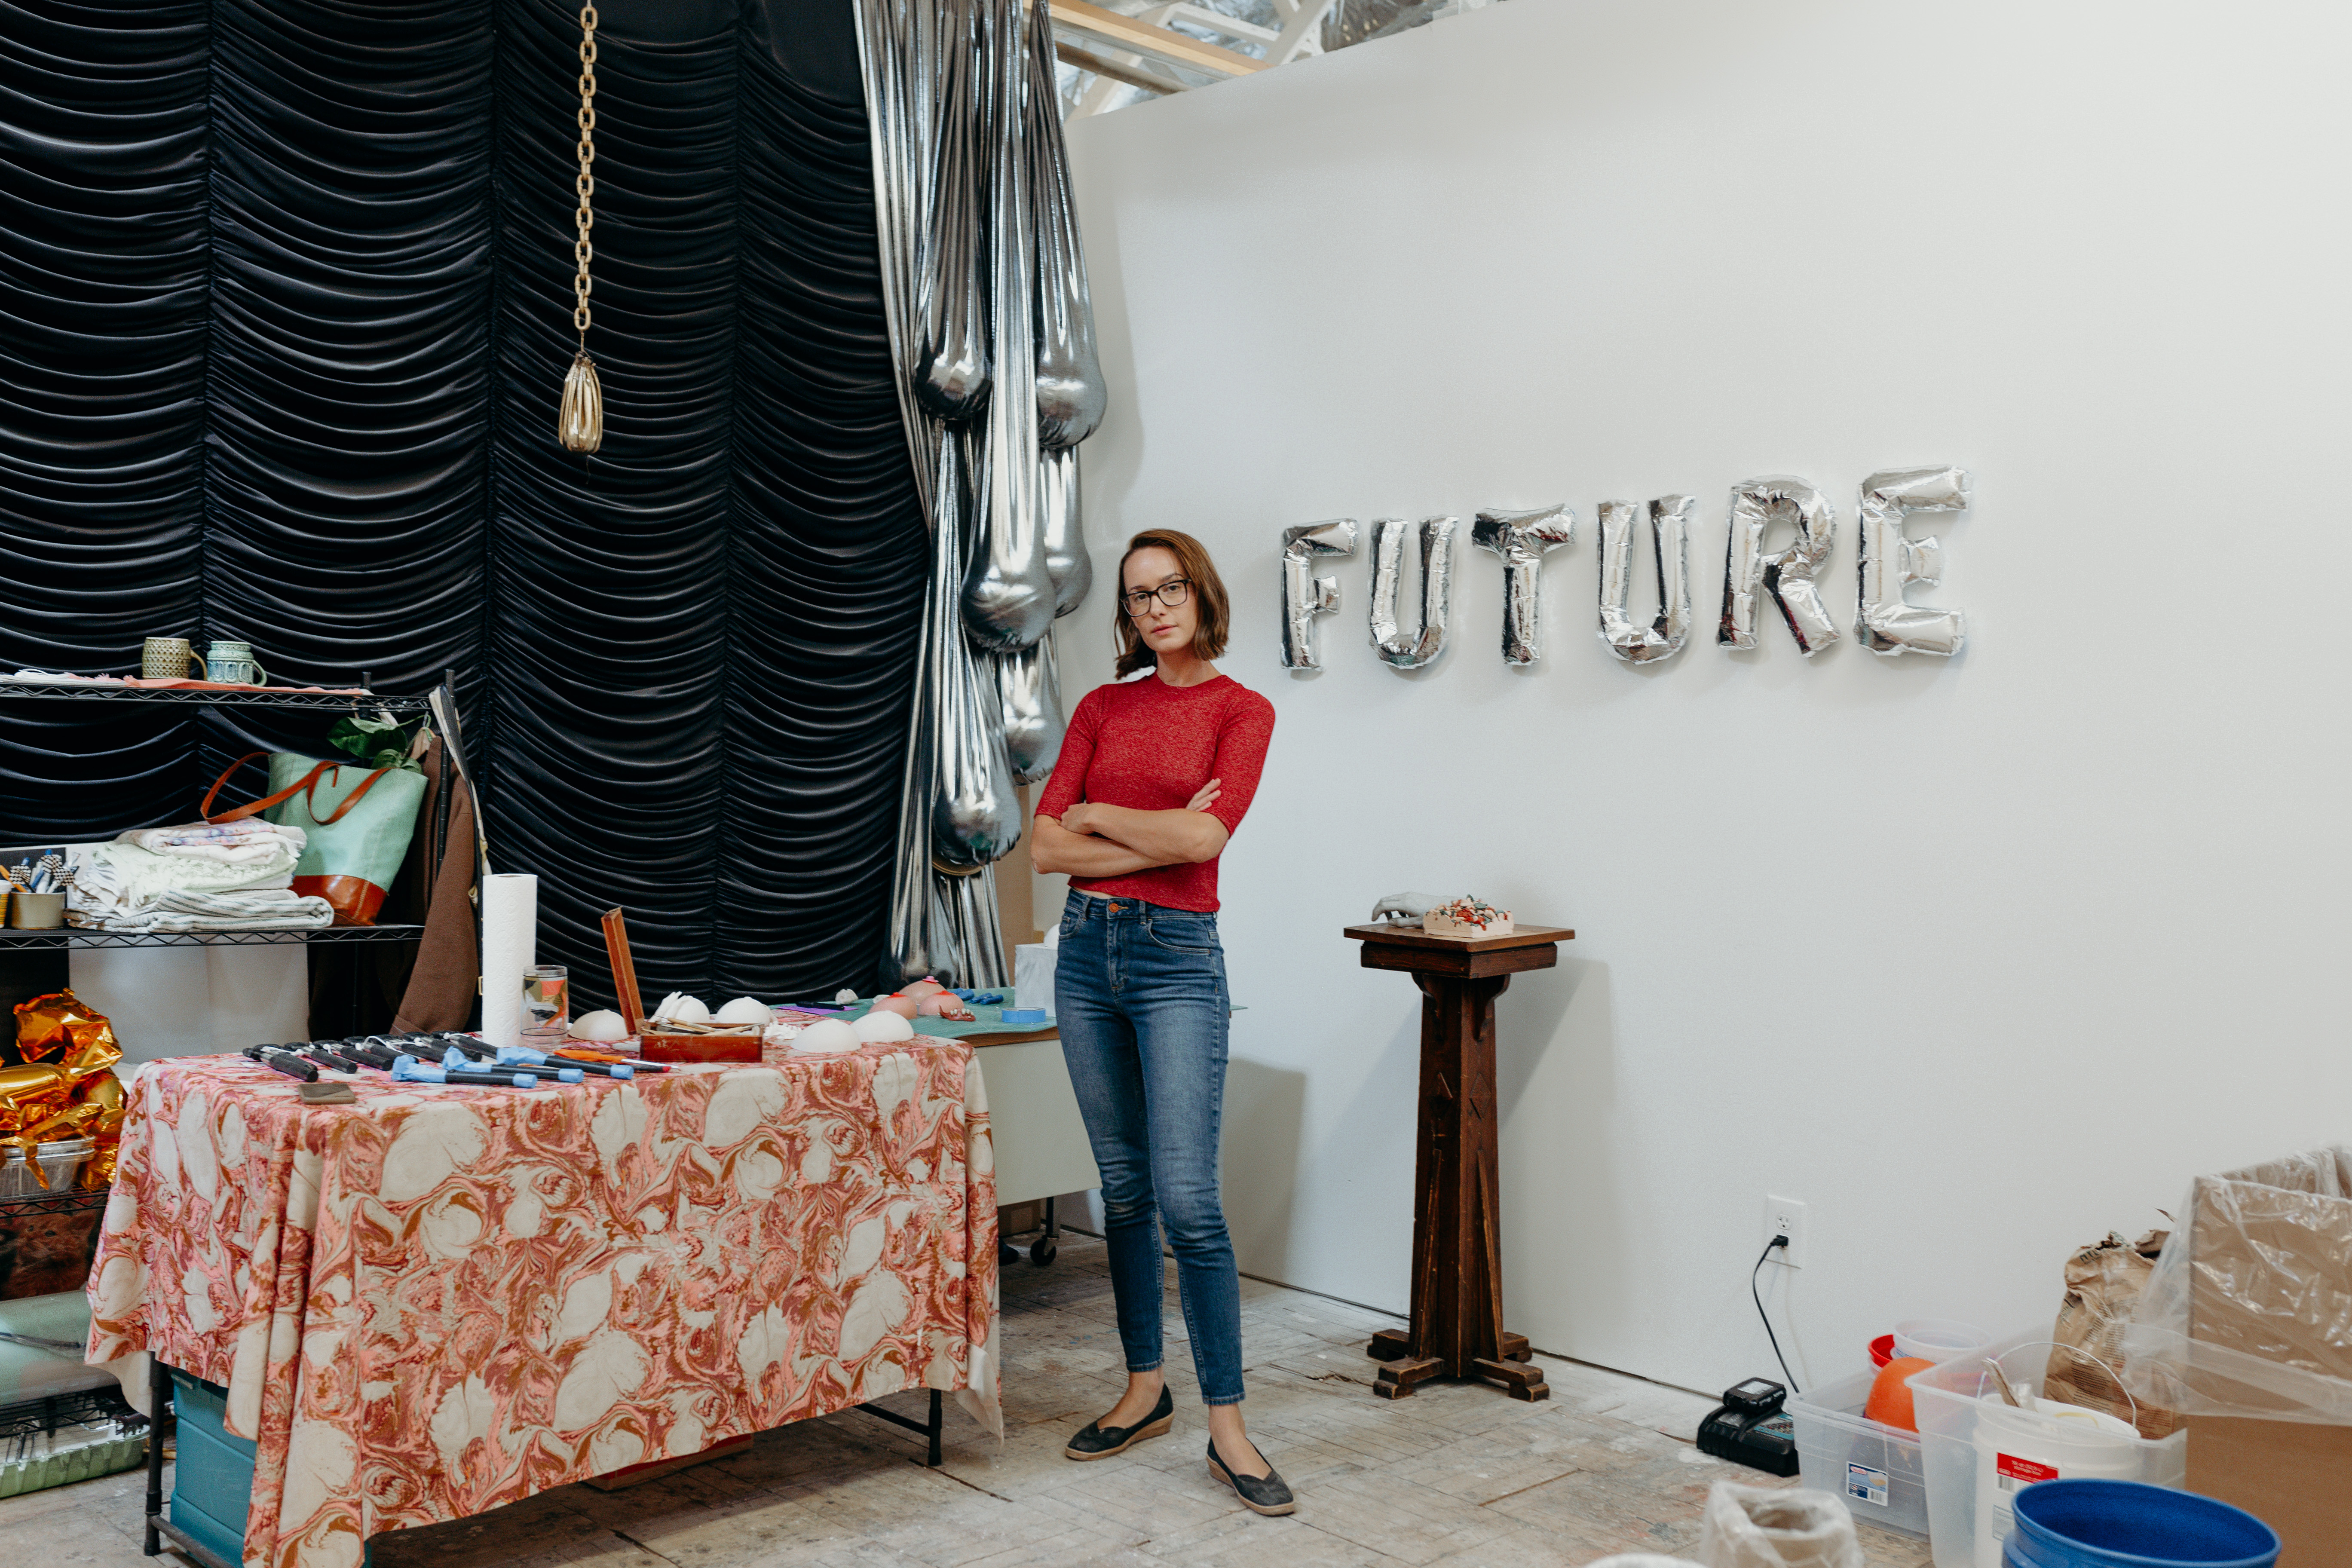 Laura Shills poses in her studio with her arms crossed in front of her. Behind her on a white wall are silver balloons spelling out the word Future.